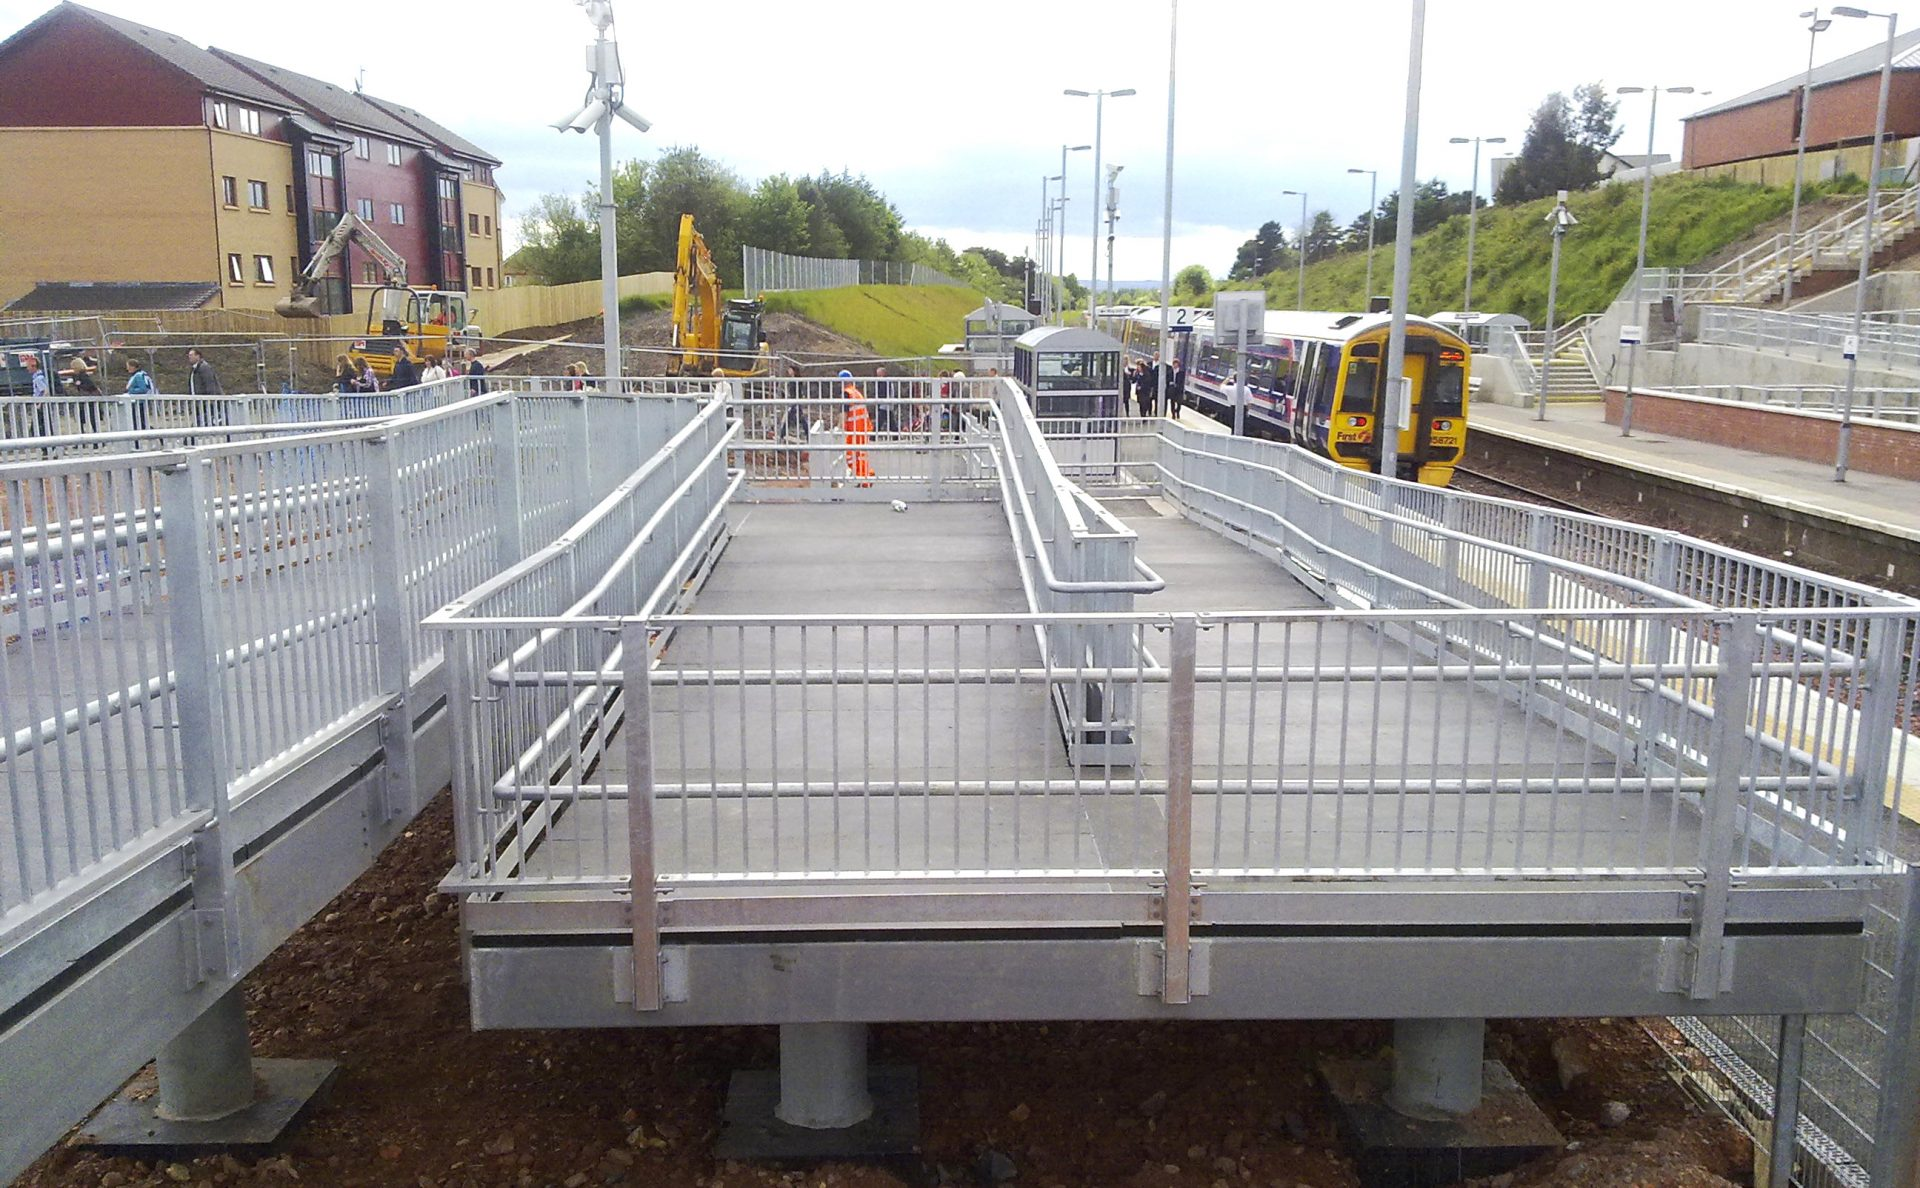 GRP deck pedestrian walkway railway station access ramp with steel structure